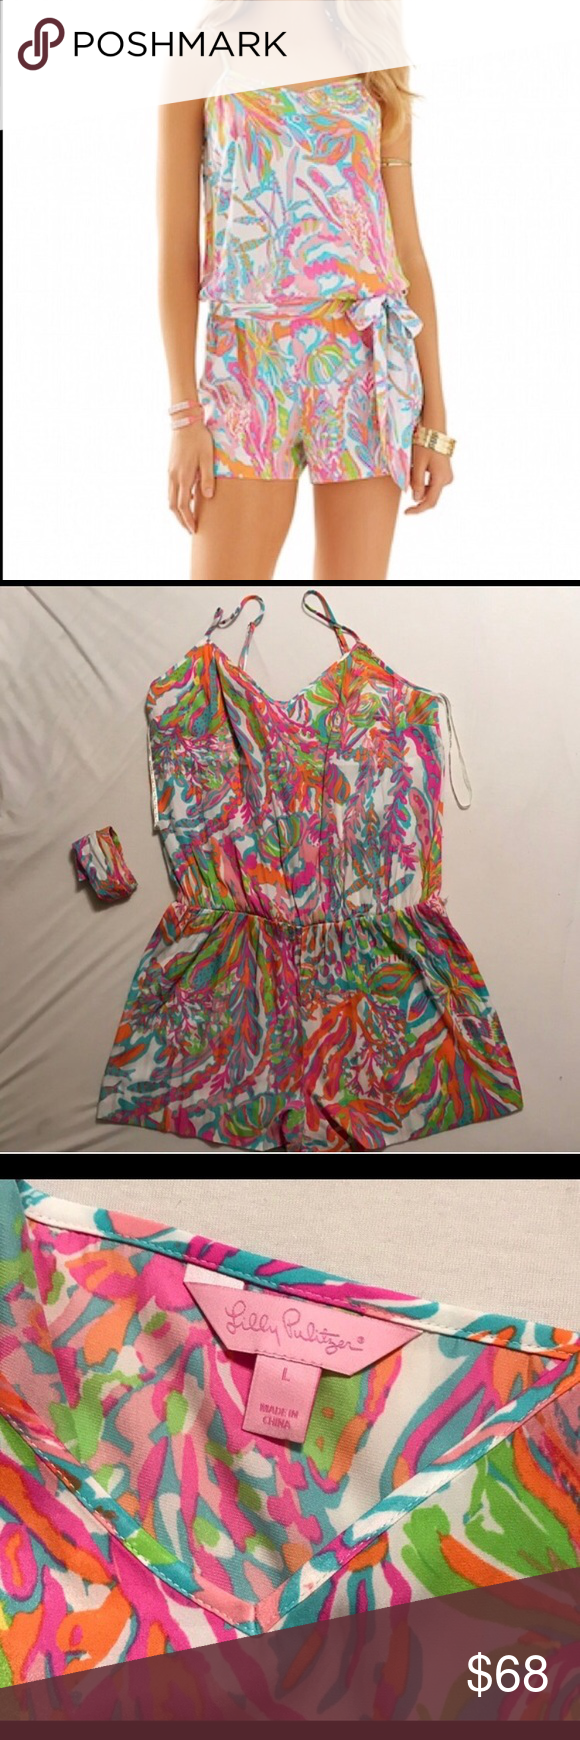 Lilly Pulitzer Romper Lilly Pulitzer Romper in Scuba to Cuba. Excellent condition- only worn once! Lilly Pulitzer Dresses